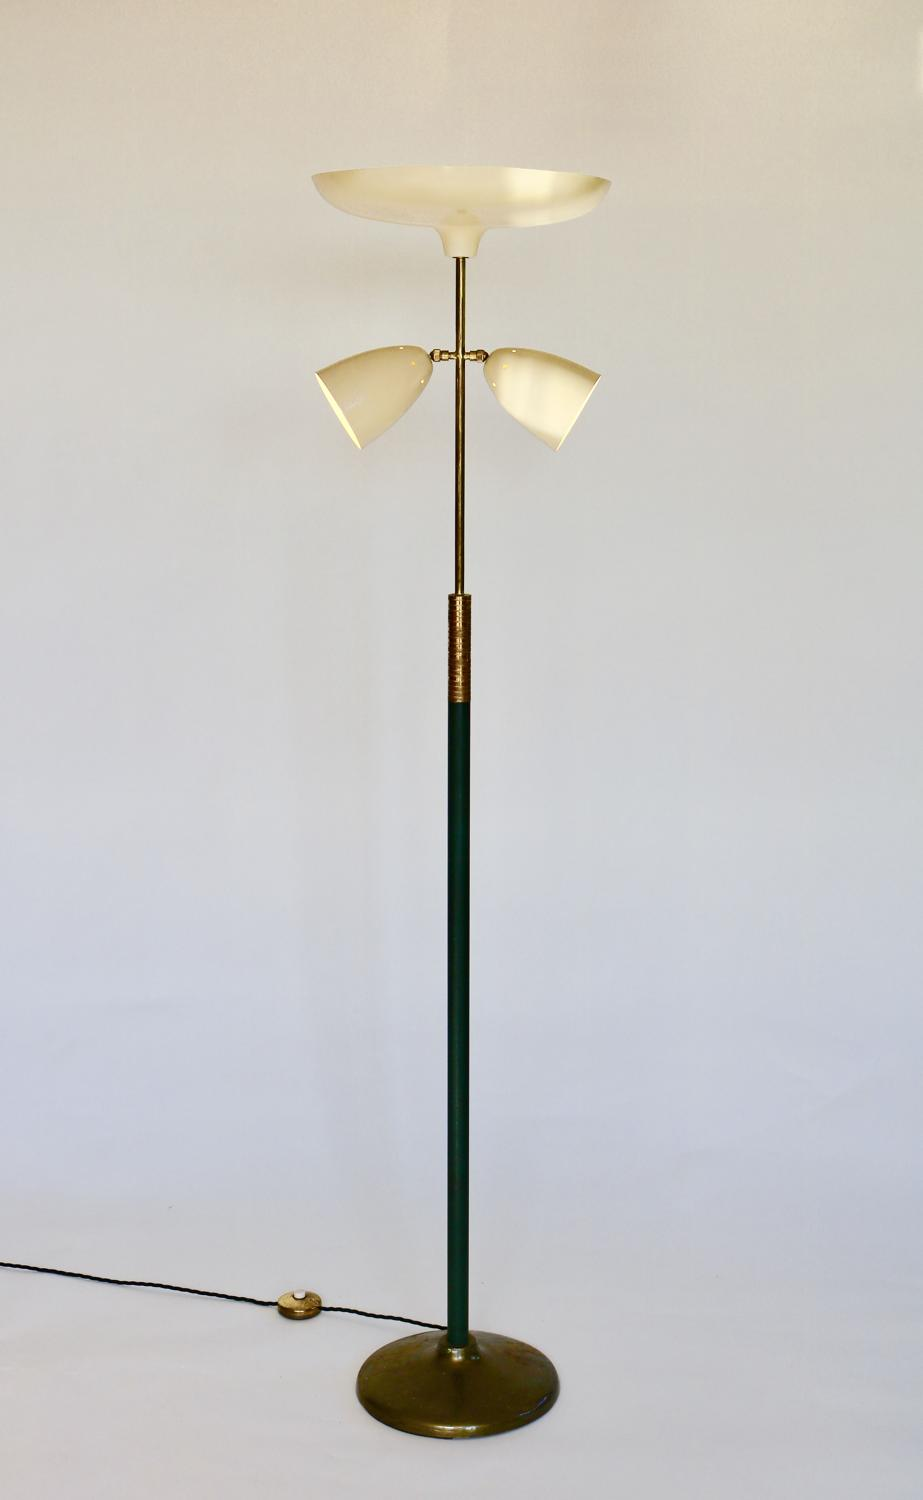 Italian Brass & Leather Floor Lamp